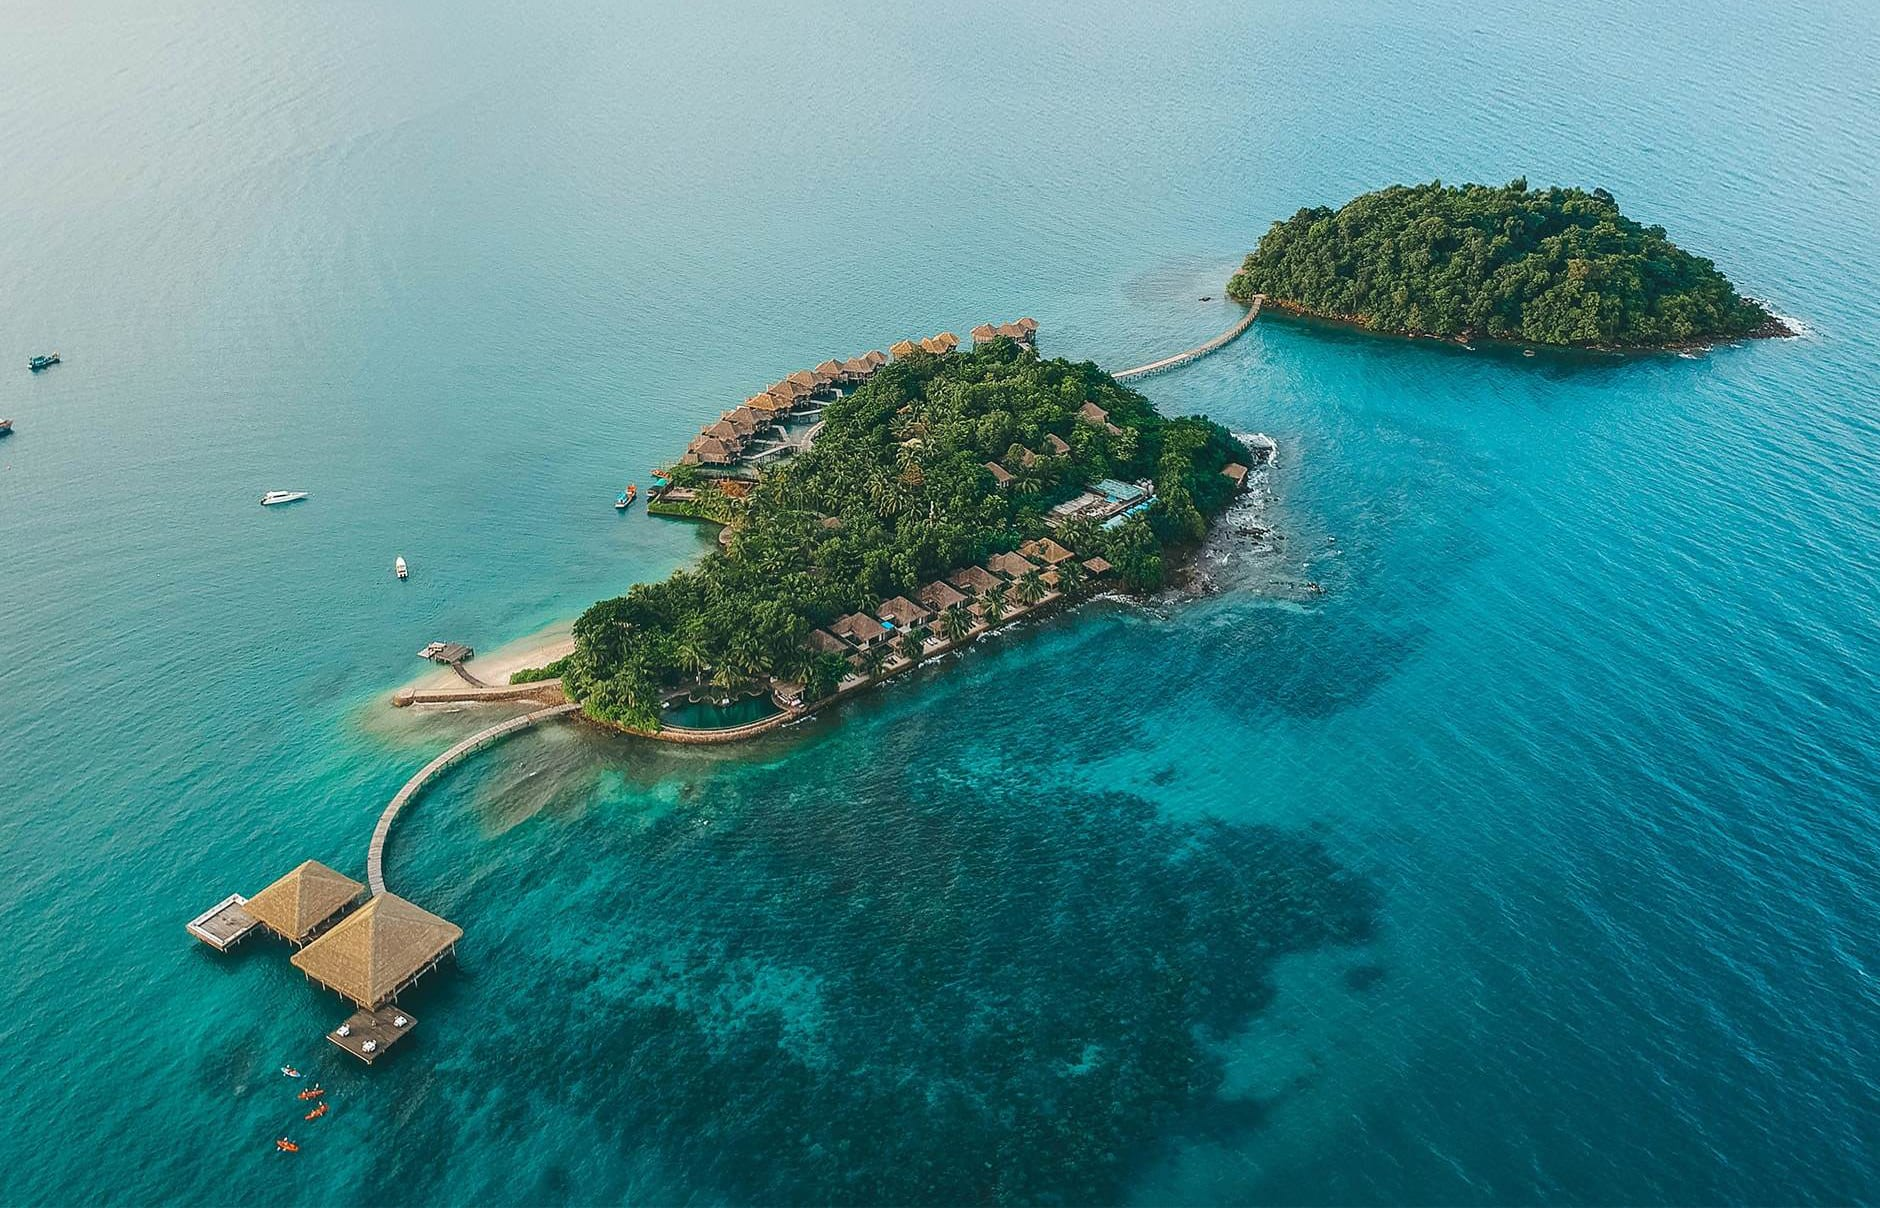 Song Saa Private Island, Koh Rong Archipelago, Cambodia. Hotel Review by TravelPlusStyle. Photo © Song Saa